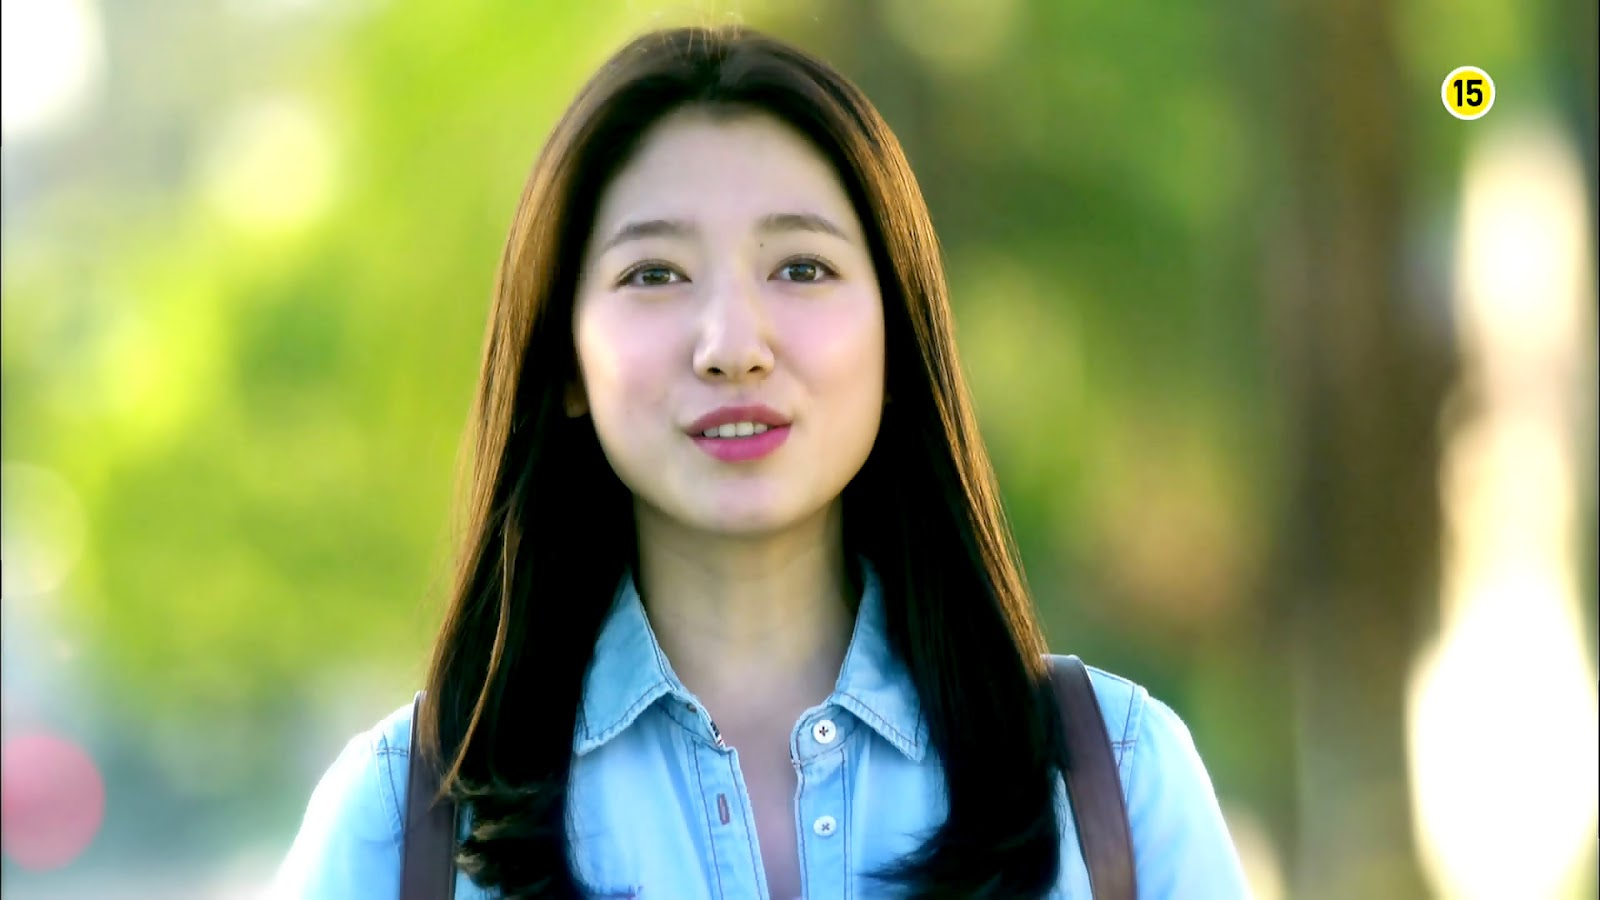 Park Shin Hye International Fanclub 박신혜 국제 팬클럽 Video